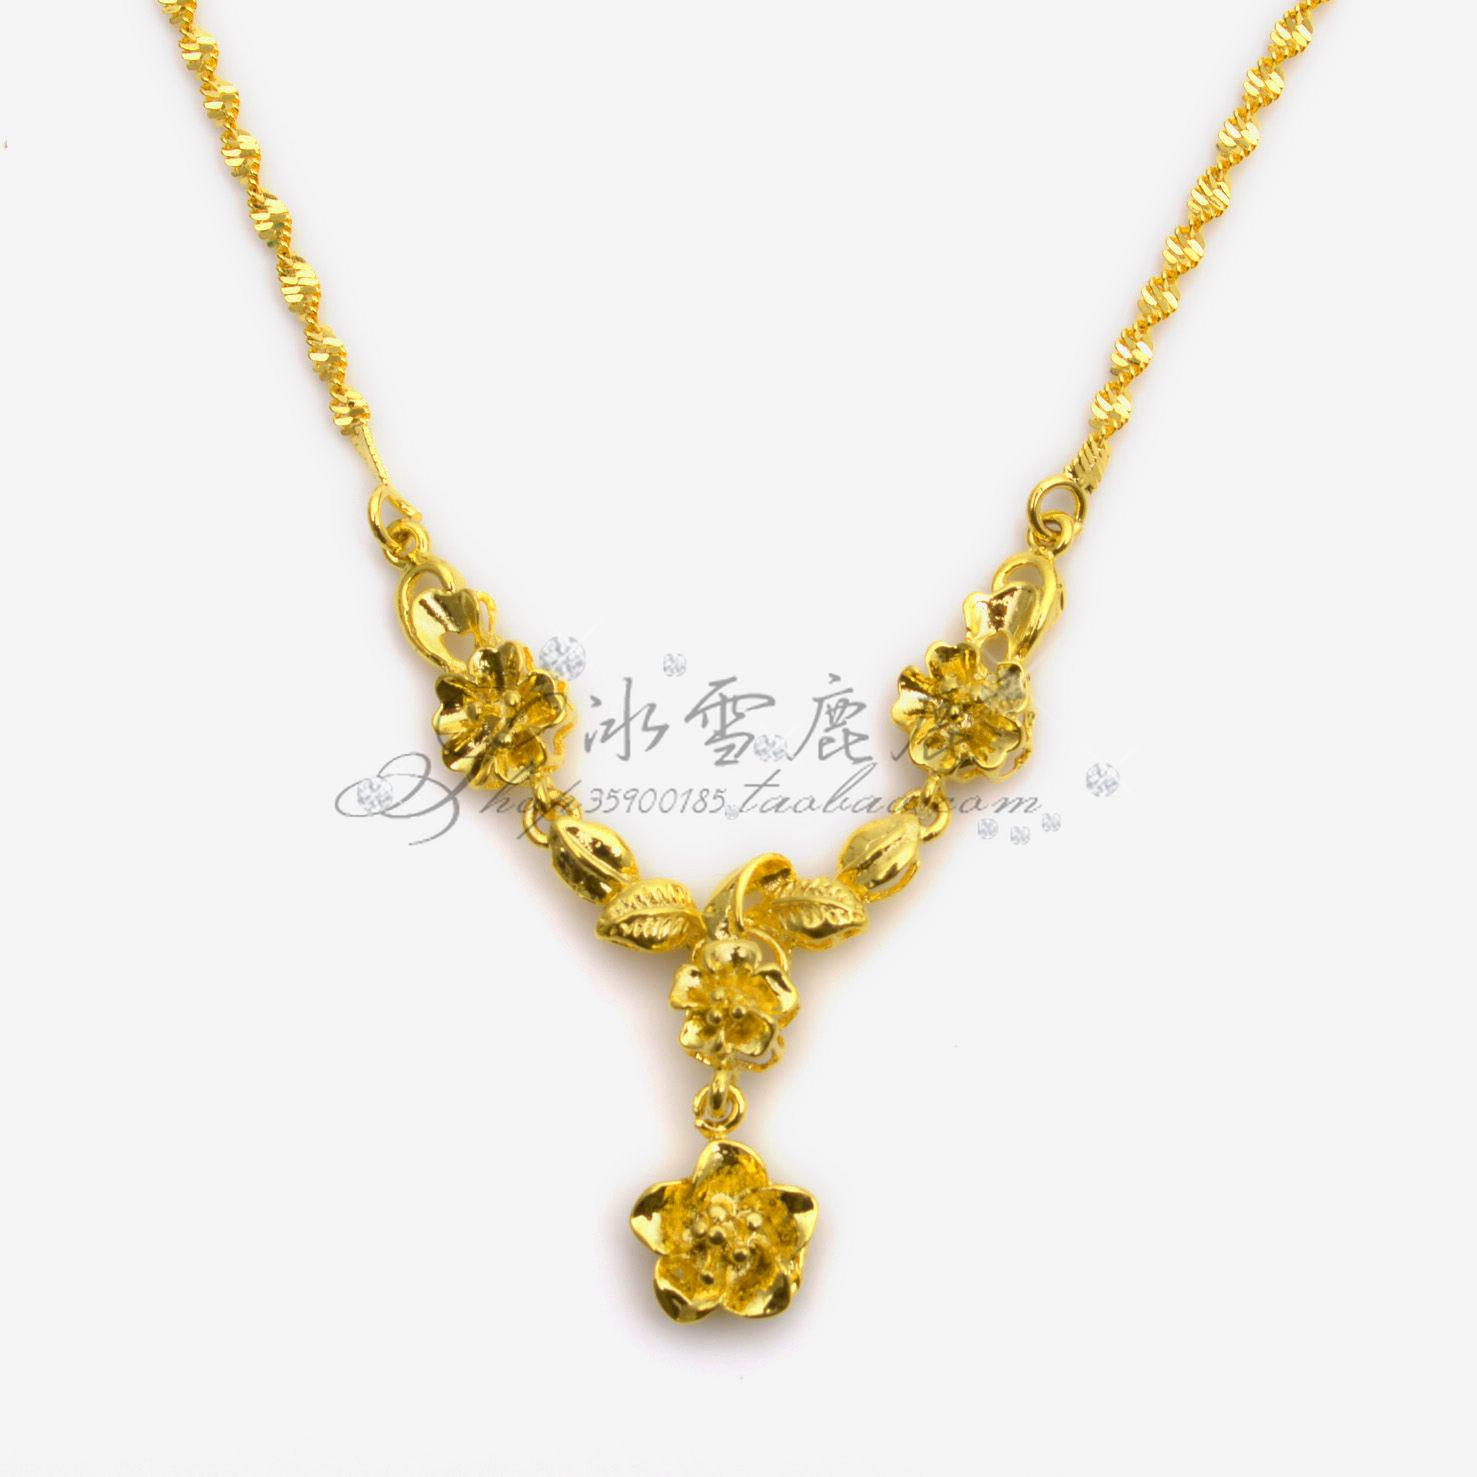 2013 New Beautiful Morning Glory Butterfly Rose Gold Shop In The Sale Of Imitation Gold Alluvial